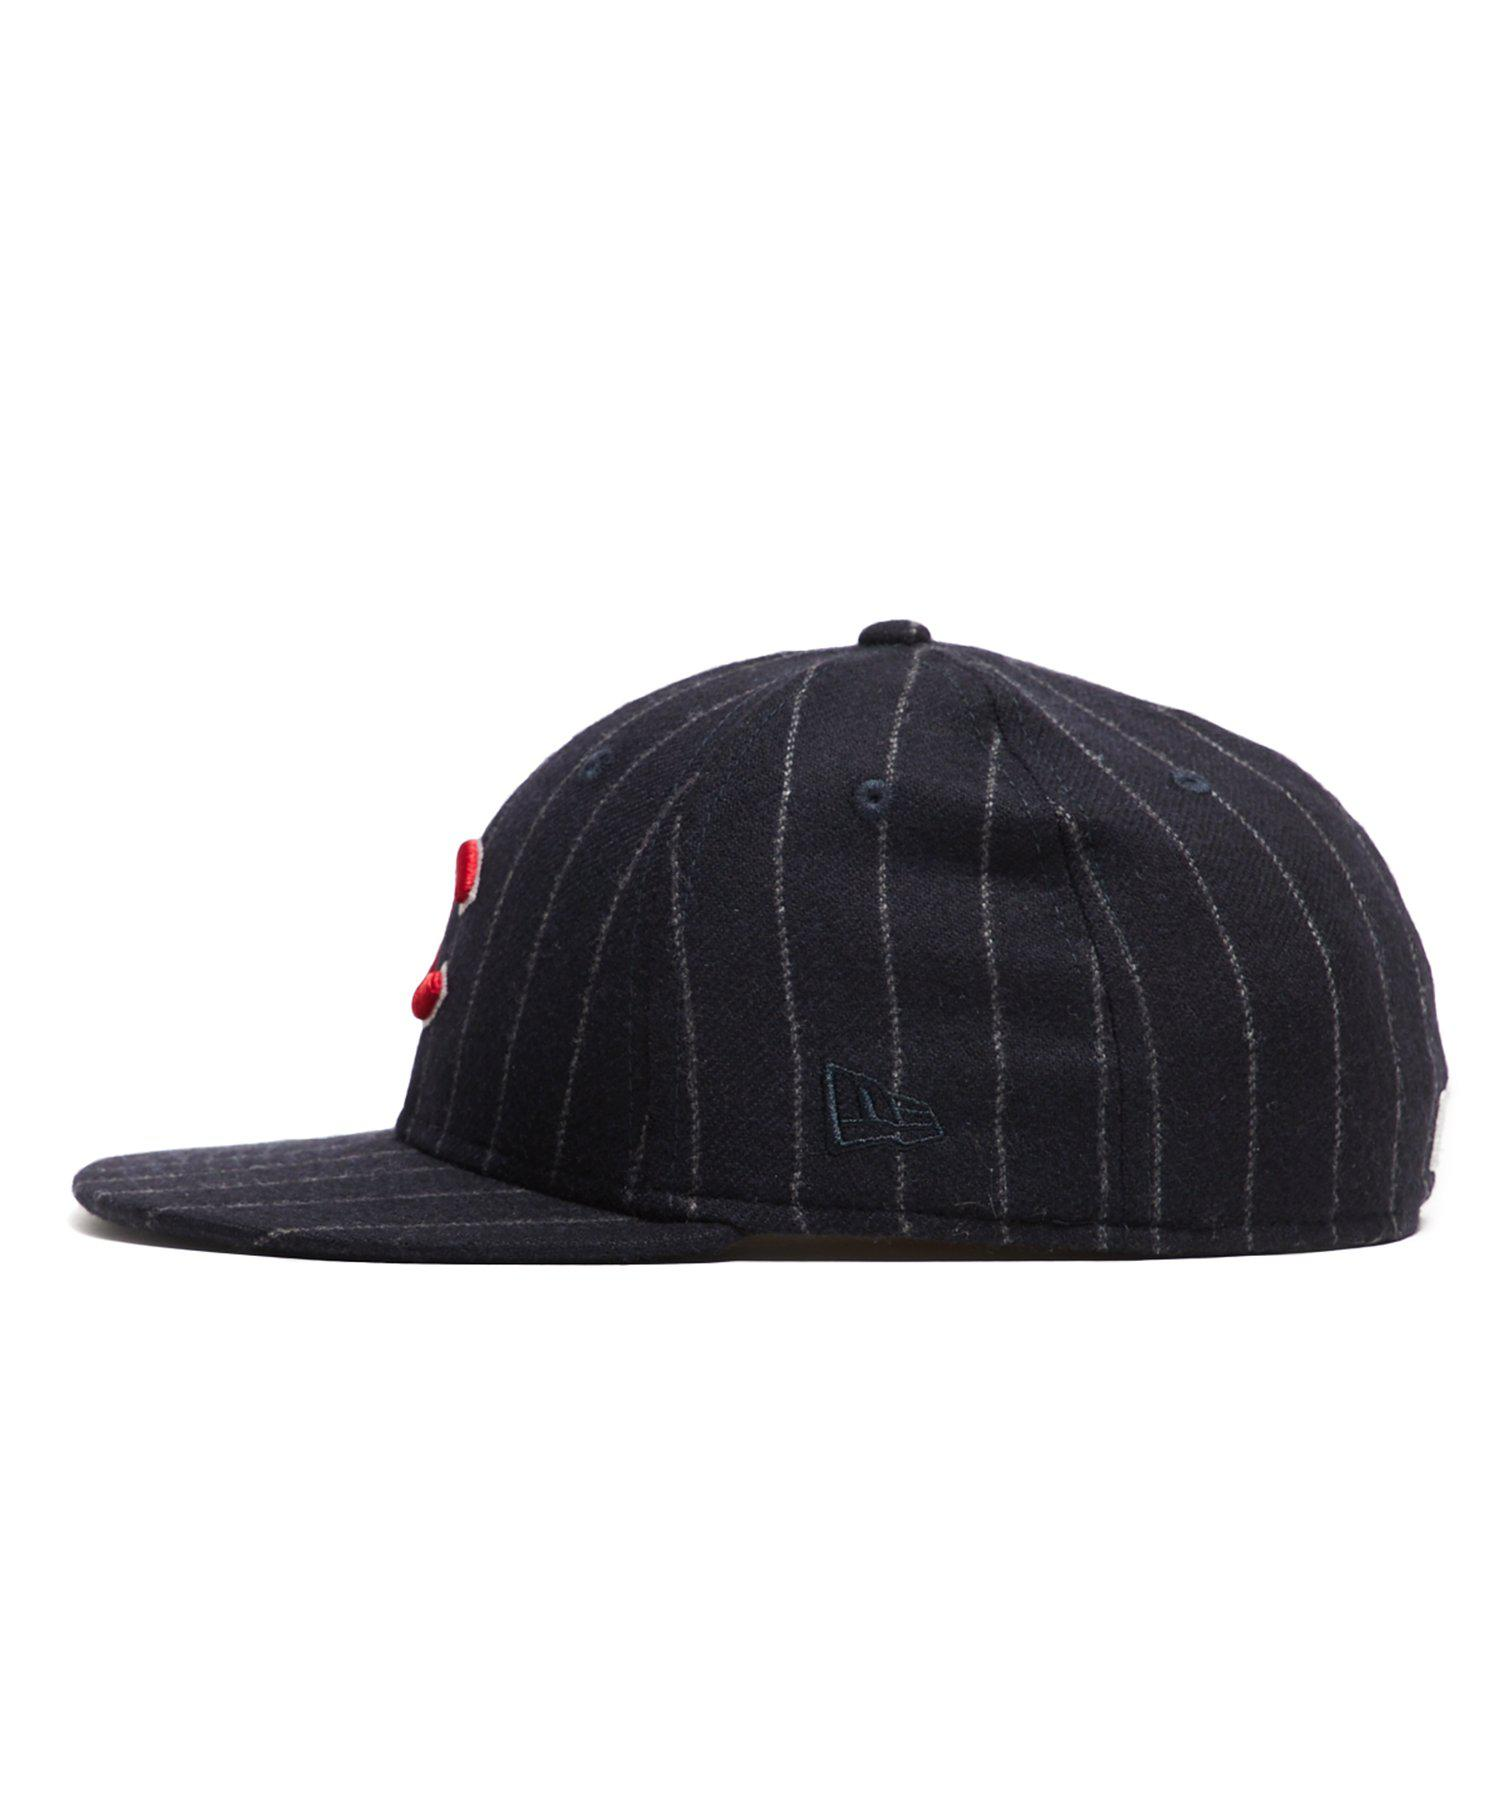 1a39652e755 Lyst - NEW ERA HATS Exclusive New Era Chicago Cubs Cap In Abraham Moon Navy  Wool Chalkstripe in Blue for Men